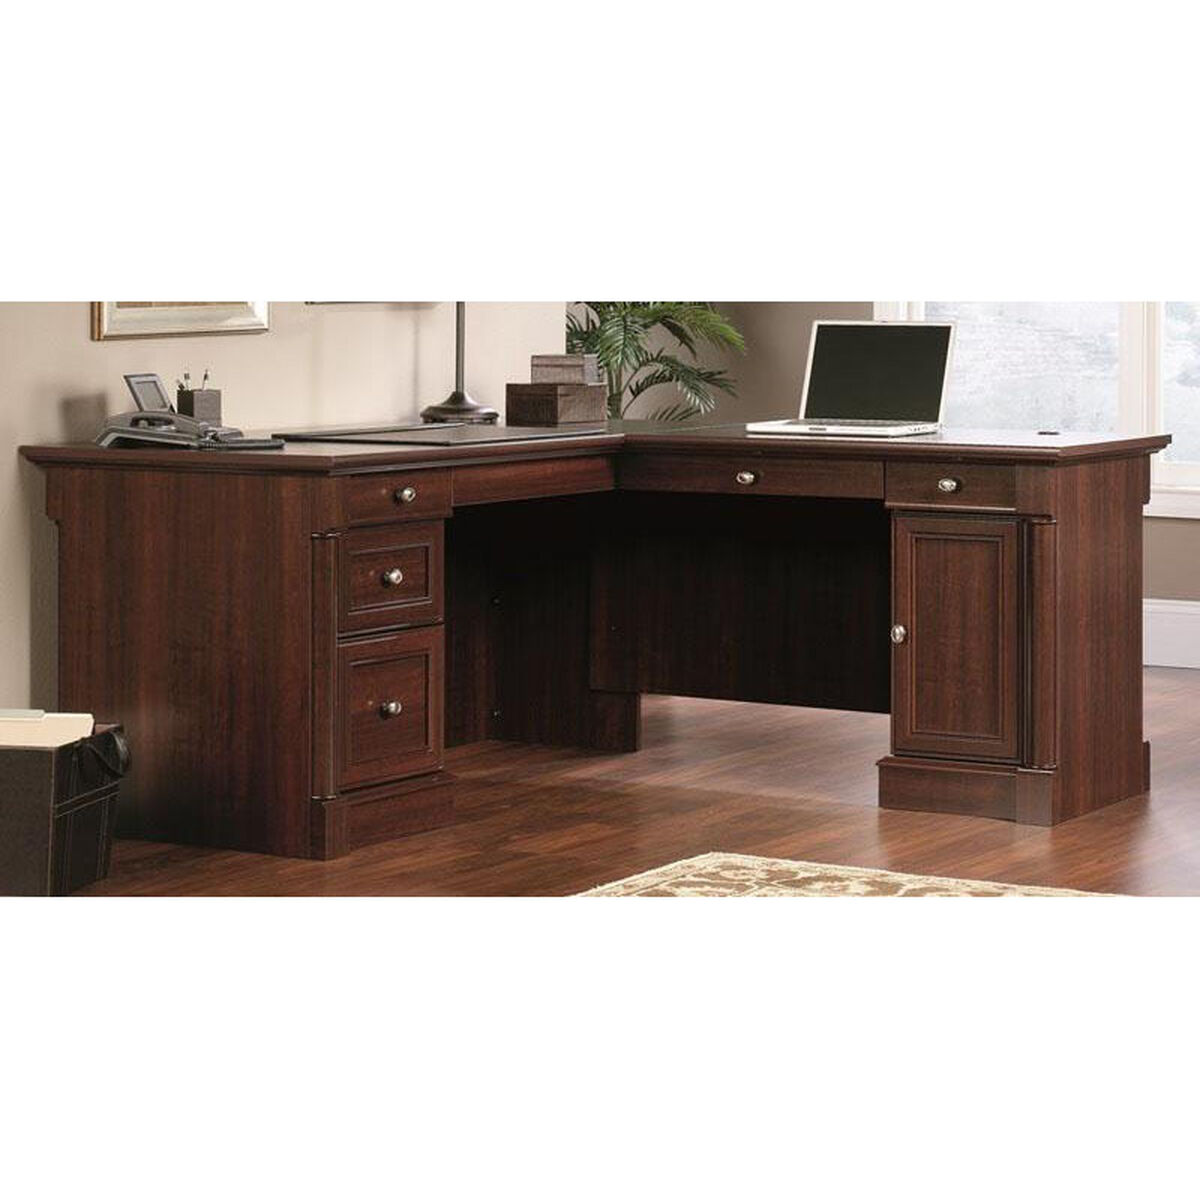 Our Palladia 68 75 W L Shape Desk Select Cherry Is On Now